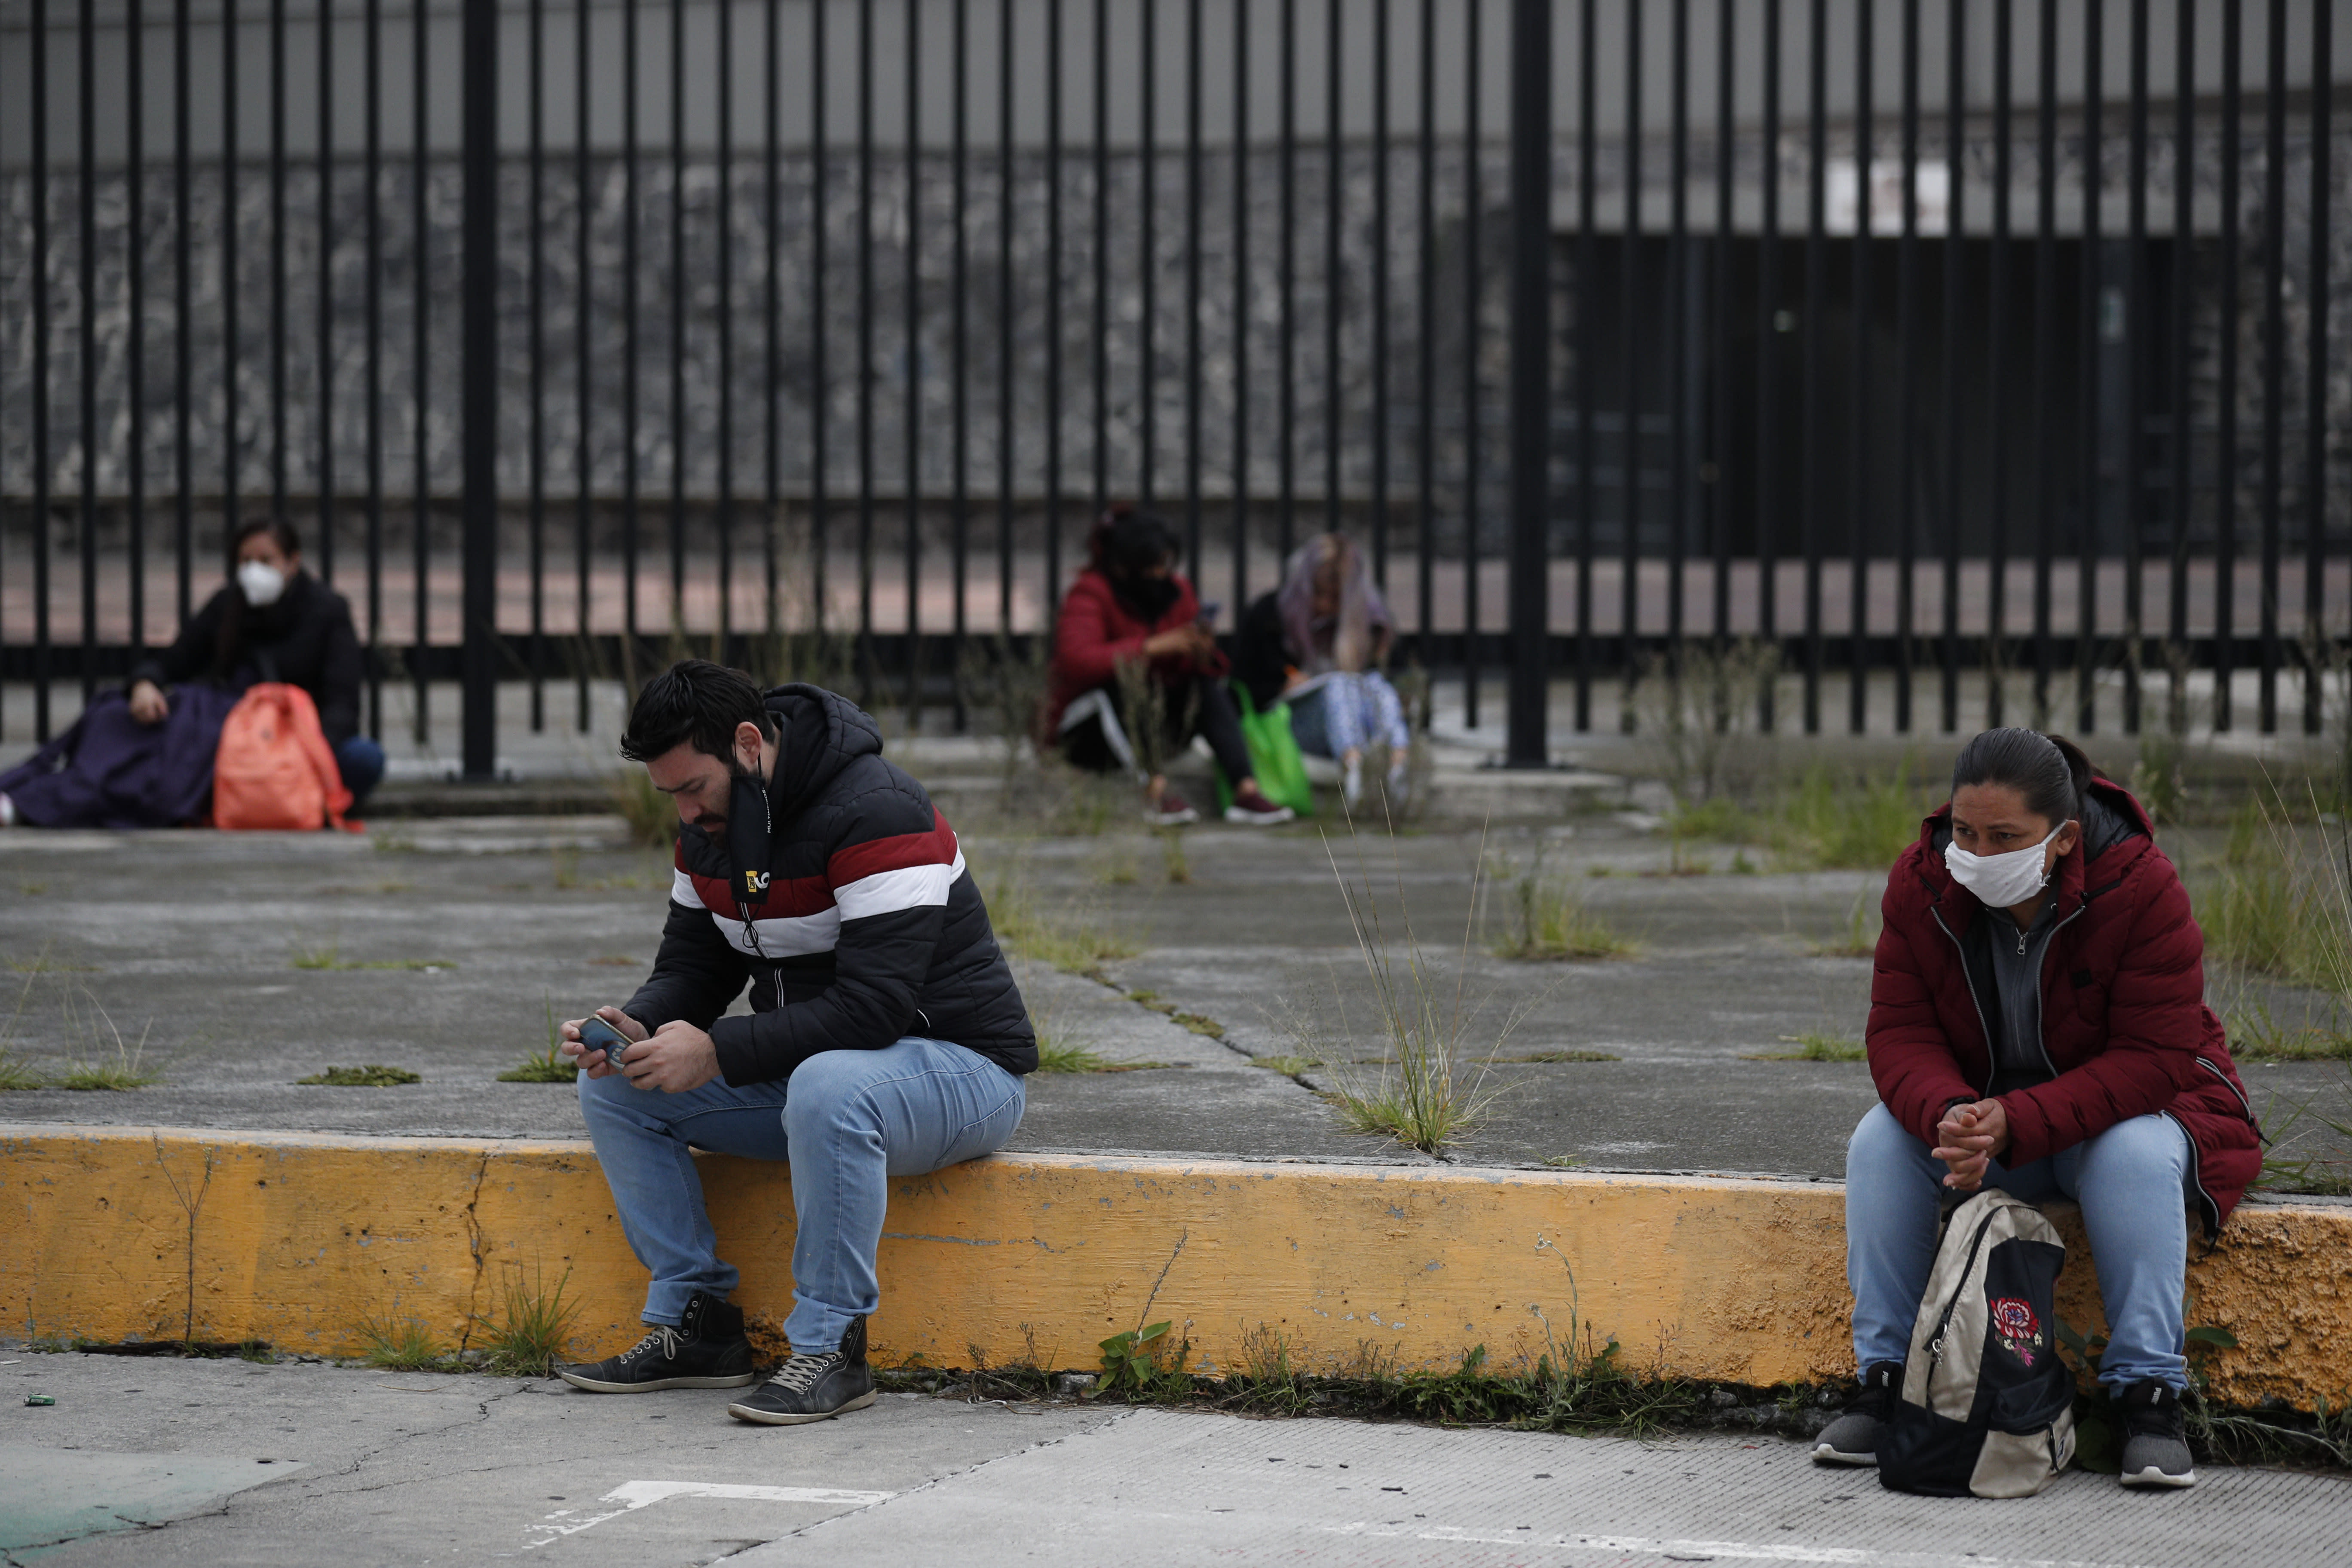 People wait outside University Olympic Stadium as their family members take the entrance exam for Mexico's National Autonomous University inside the stadium amidst the ongoing coronavirus pandemic in Mexico City, Wednesday, Aug. 19, 2020. More than 2,000 hopefuls registered to take the exam at the stadium, where it was being offered for the first time, and more than 80,000 aspirants were registered nationwide to take the exam. (AP Photo/Rebecca Blackwell)